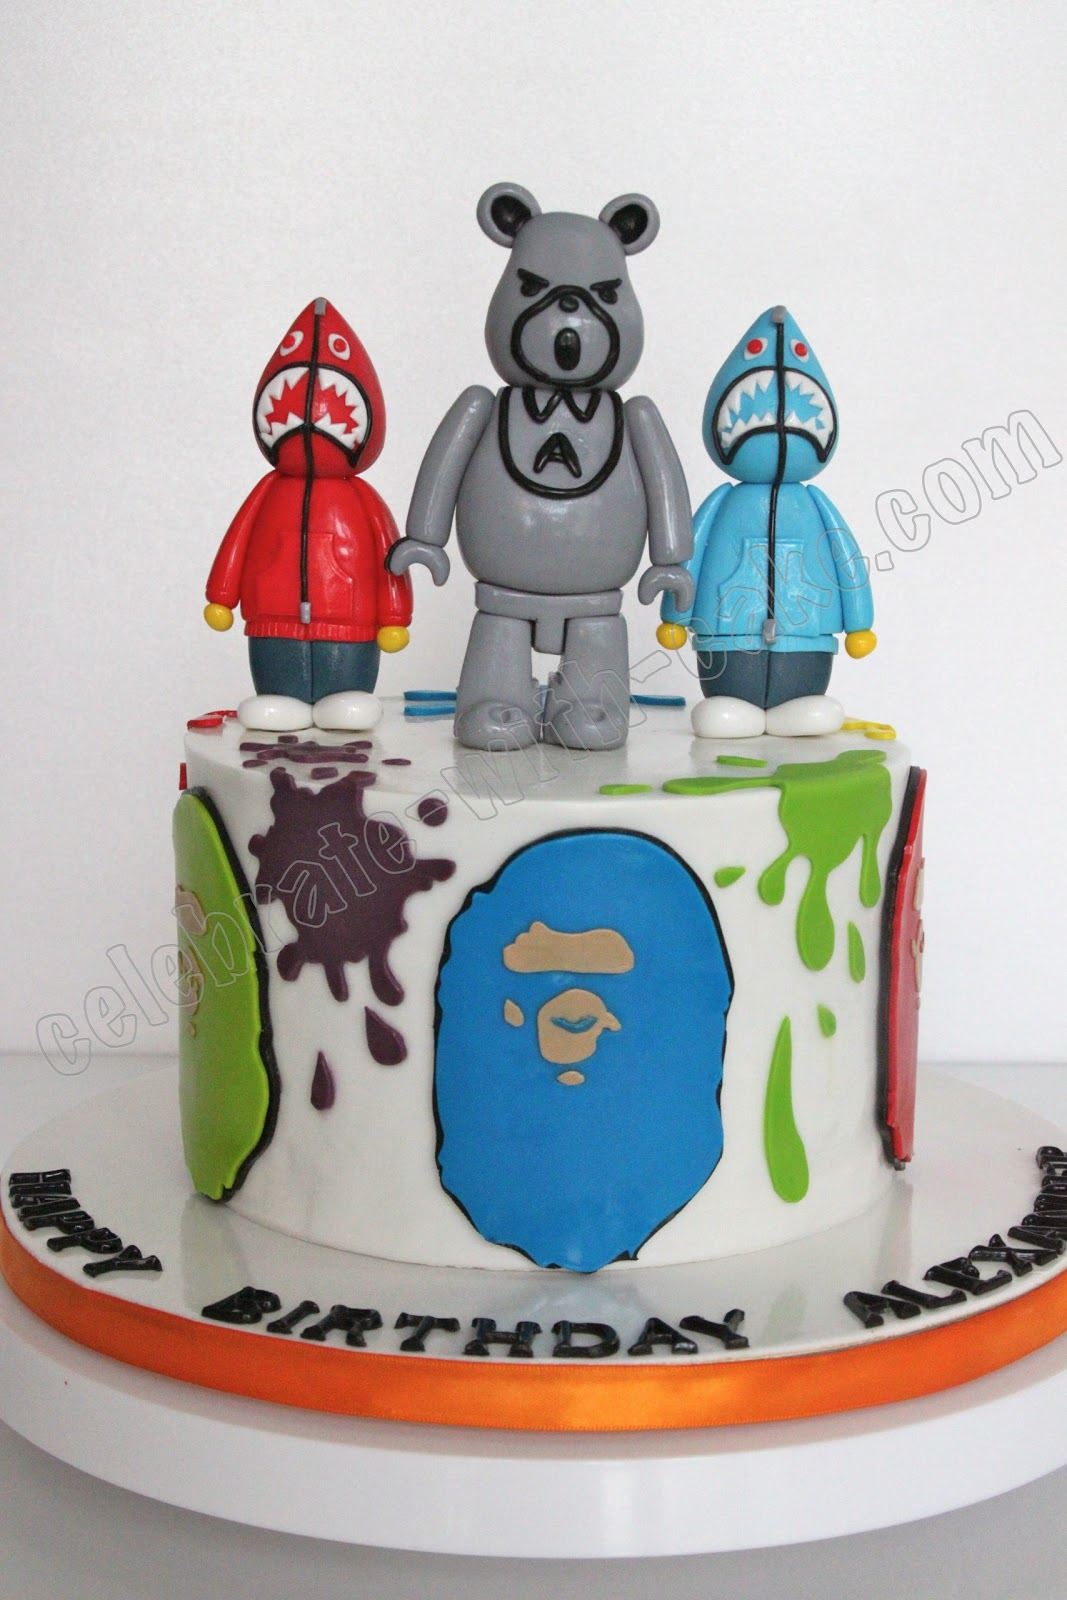 Bear Brick A Bathing Ape Themed Cake